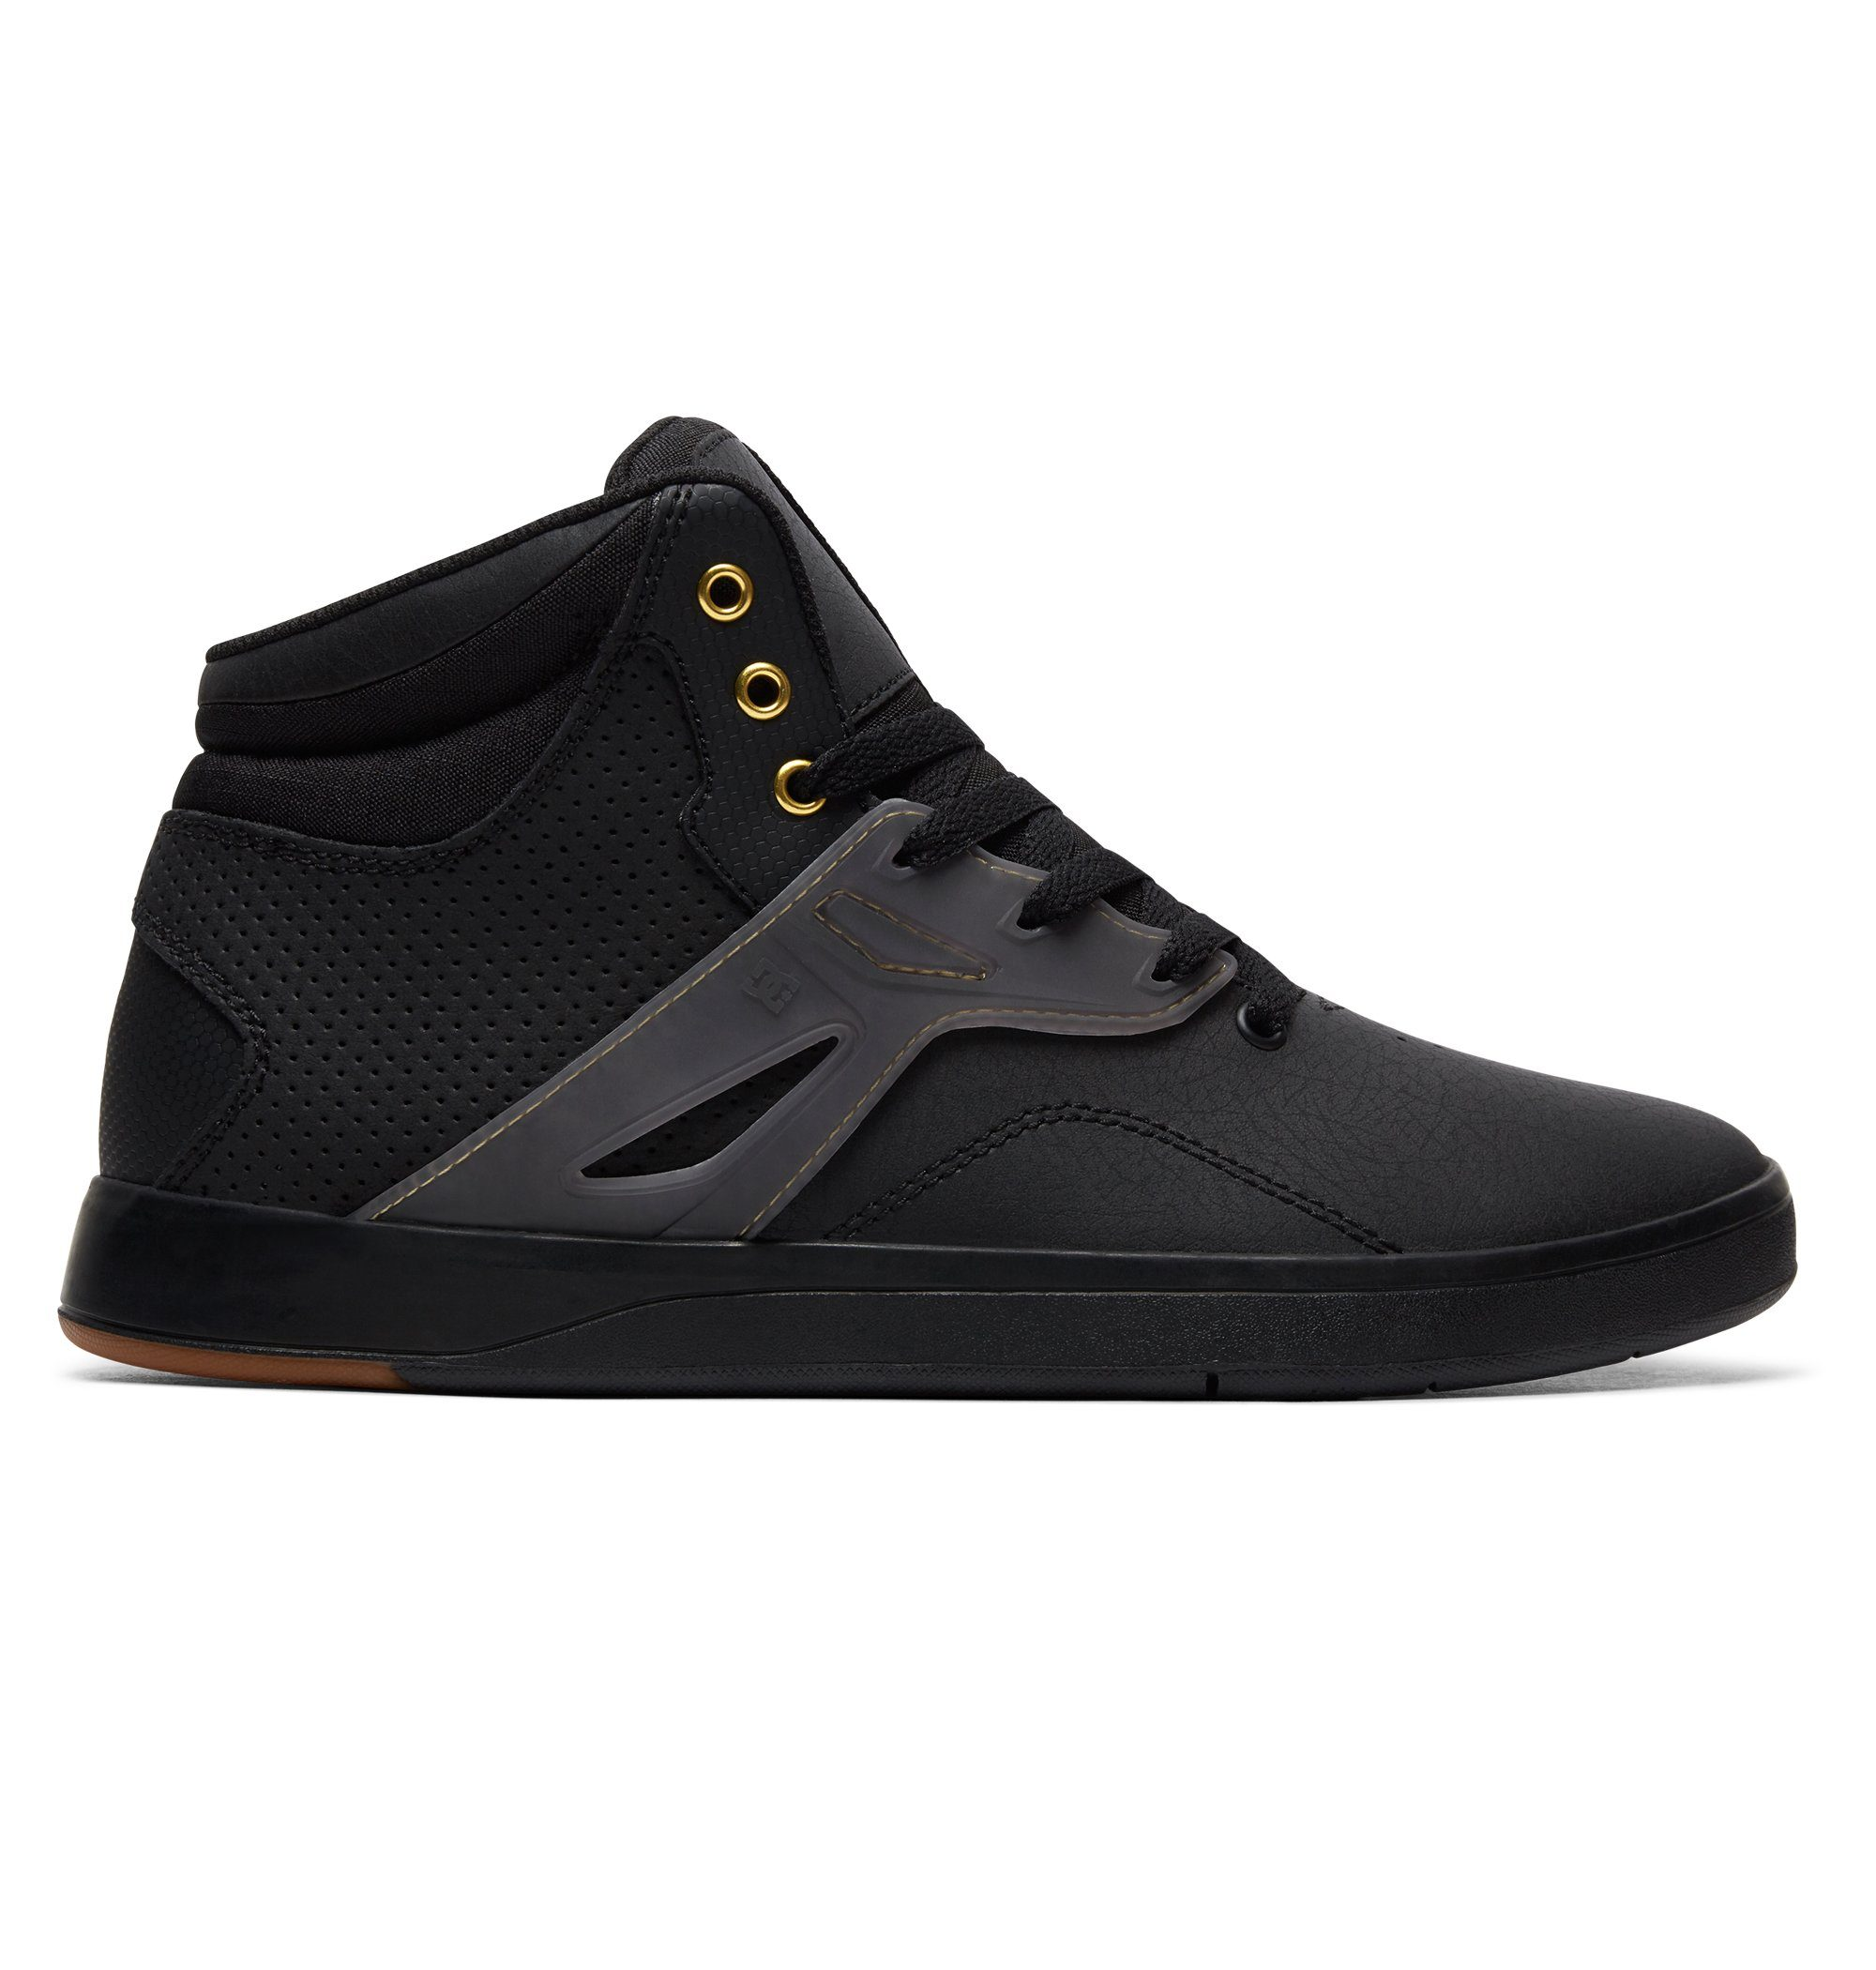 DC Shoes Hi Tops Frequency High online kaufen  Black#ft5_slash#gold